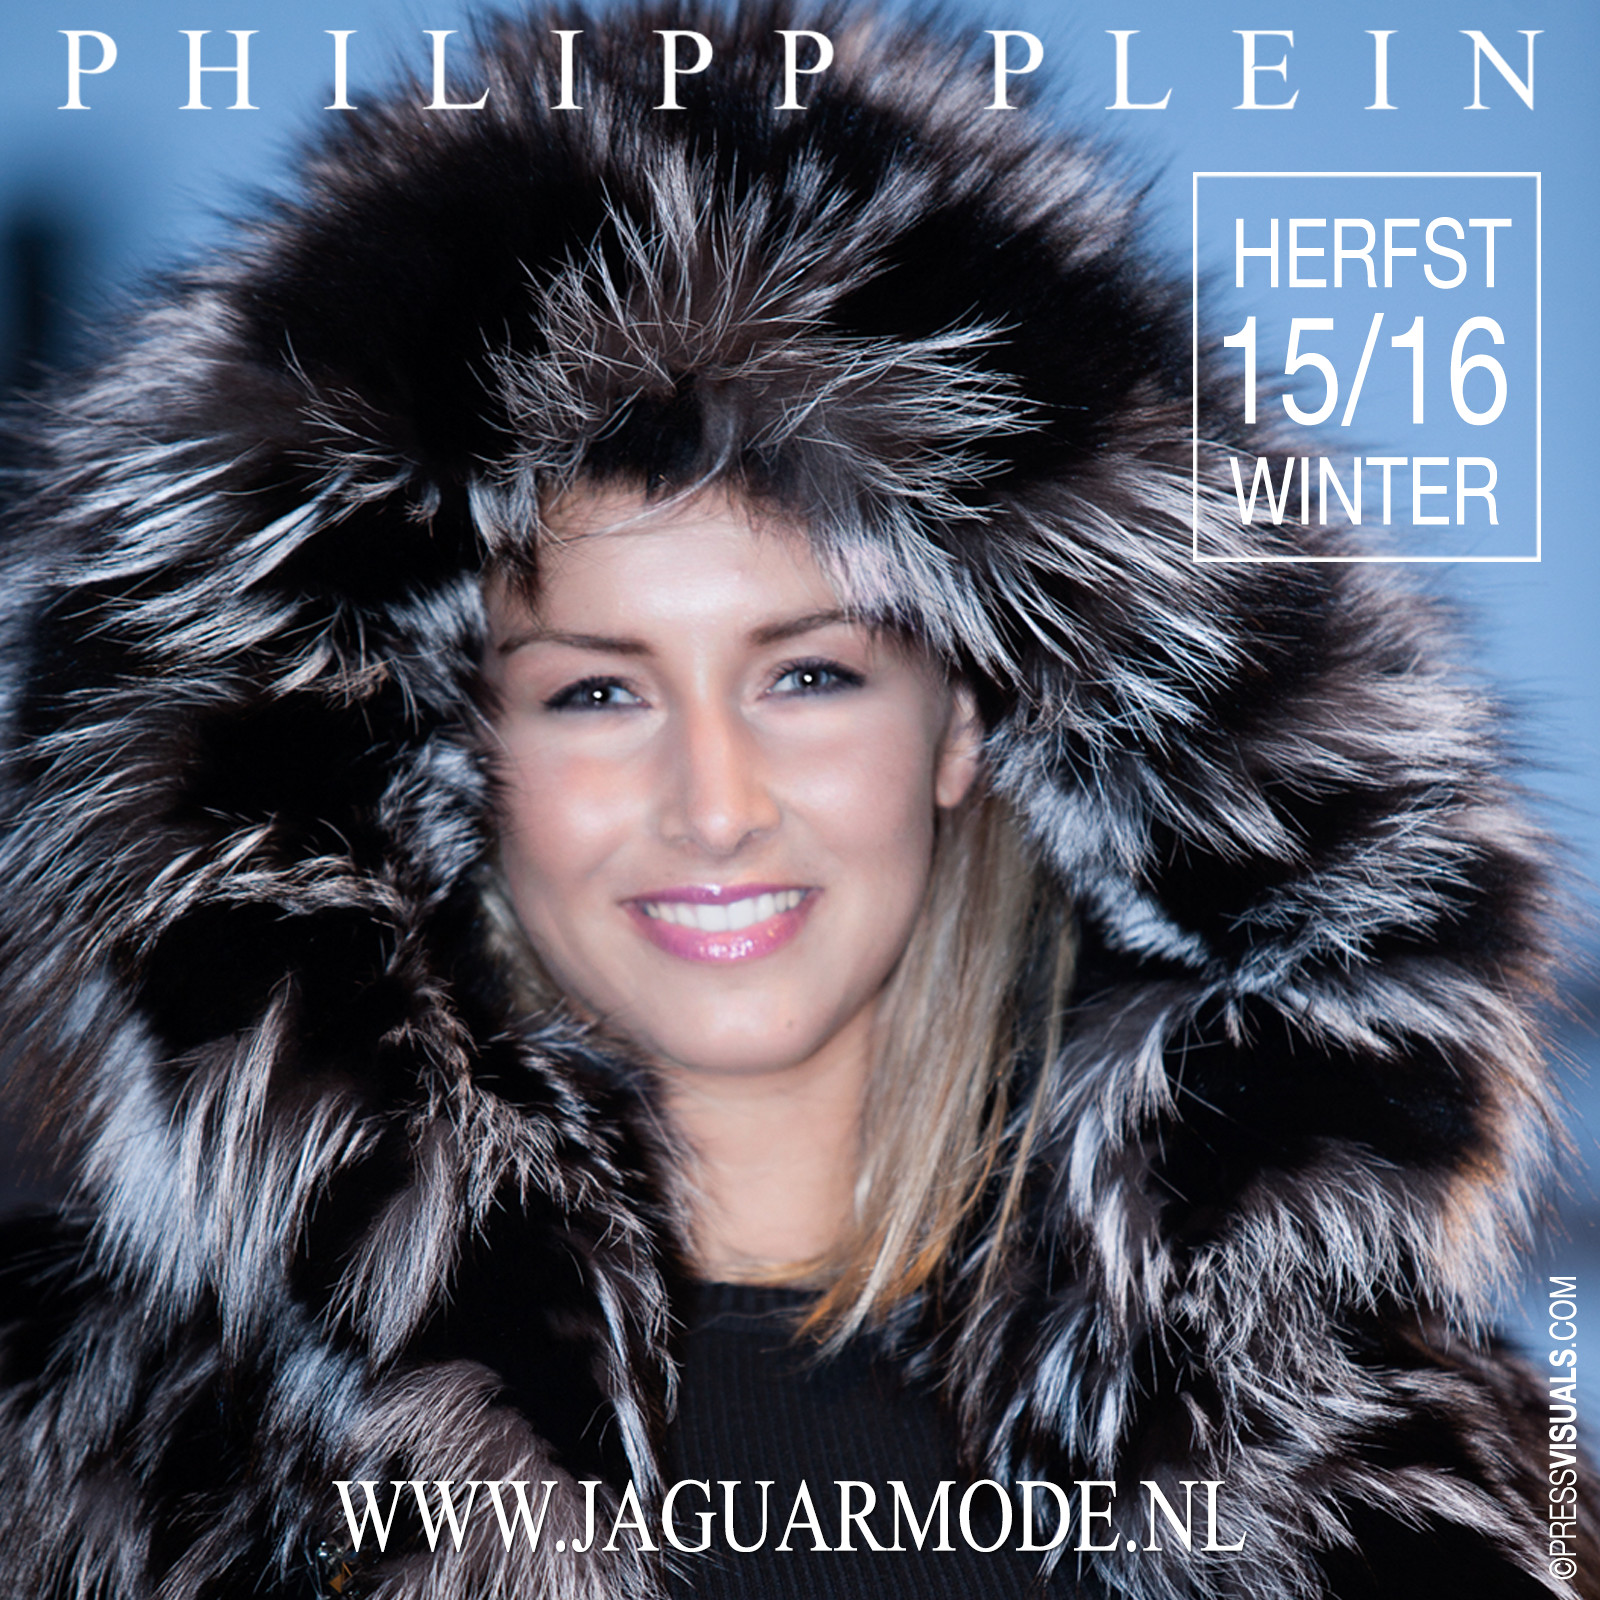 Philipp Plein by Jaguar Mode Eindhoven